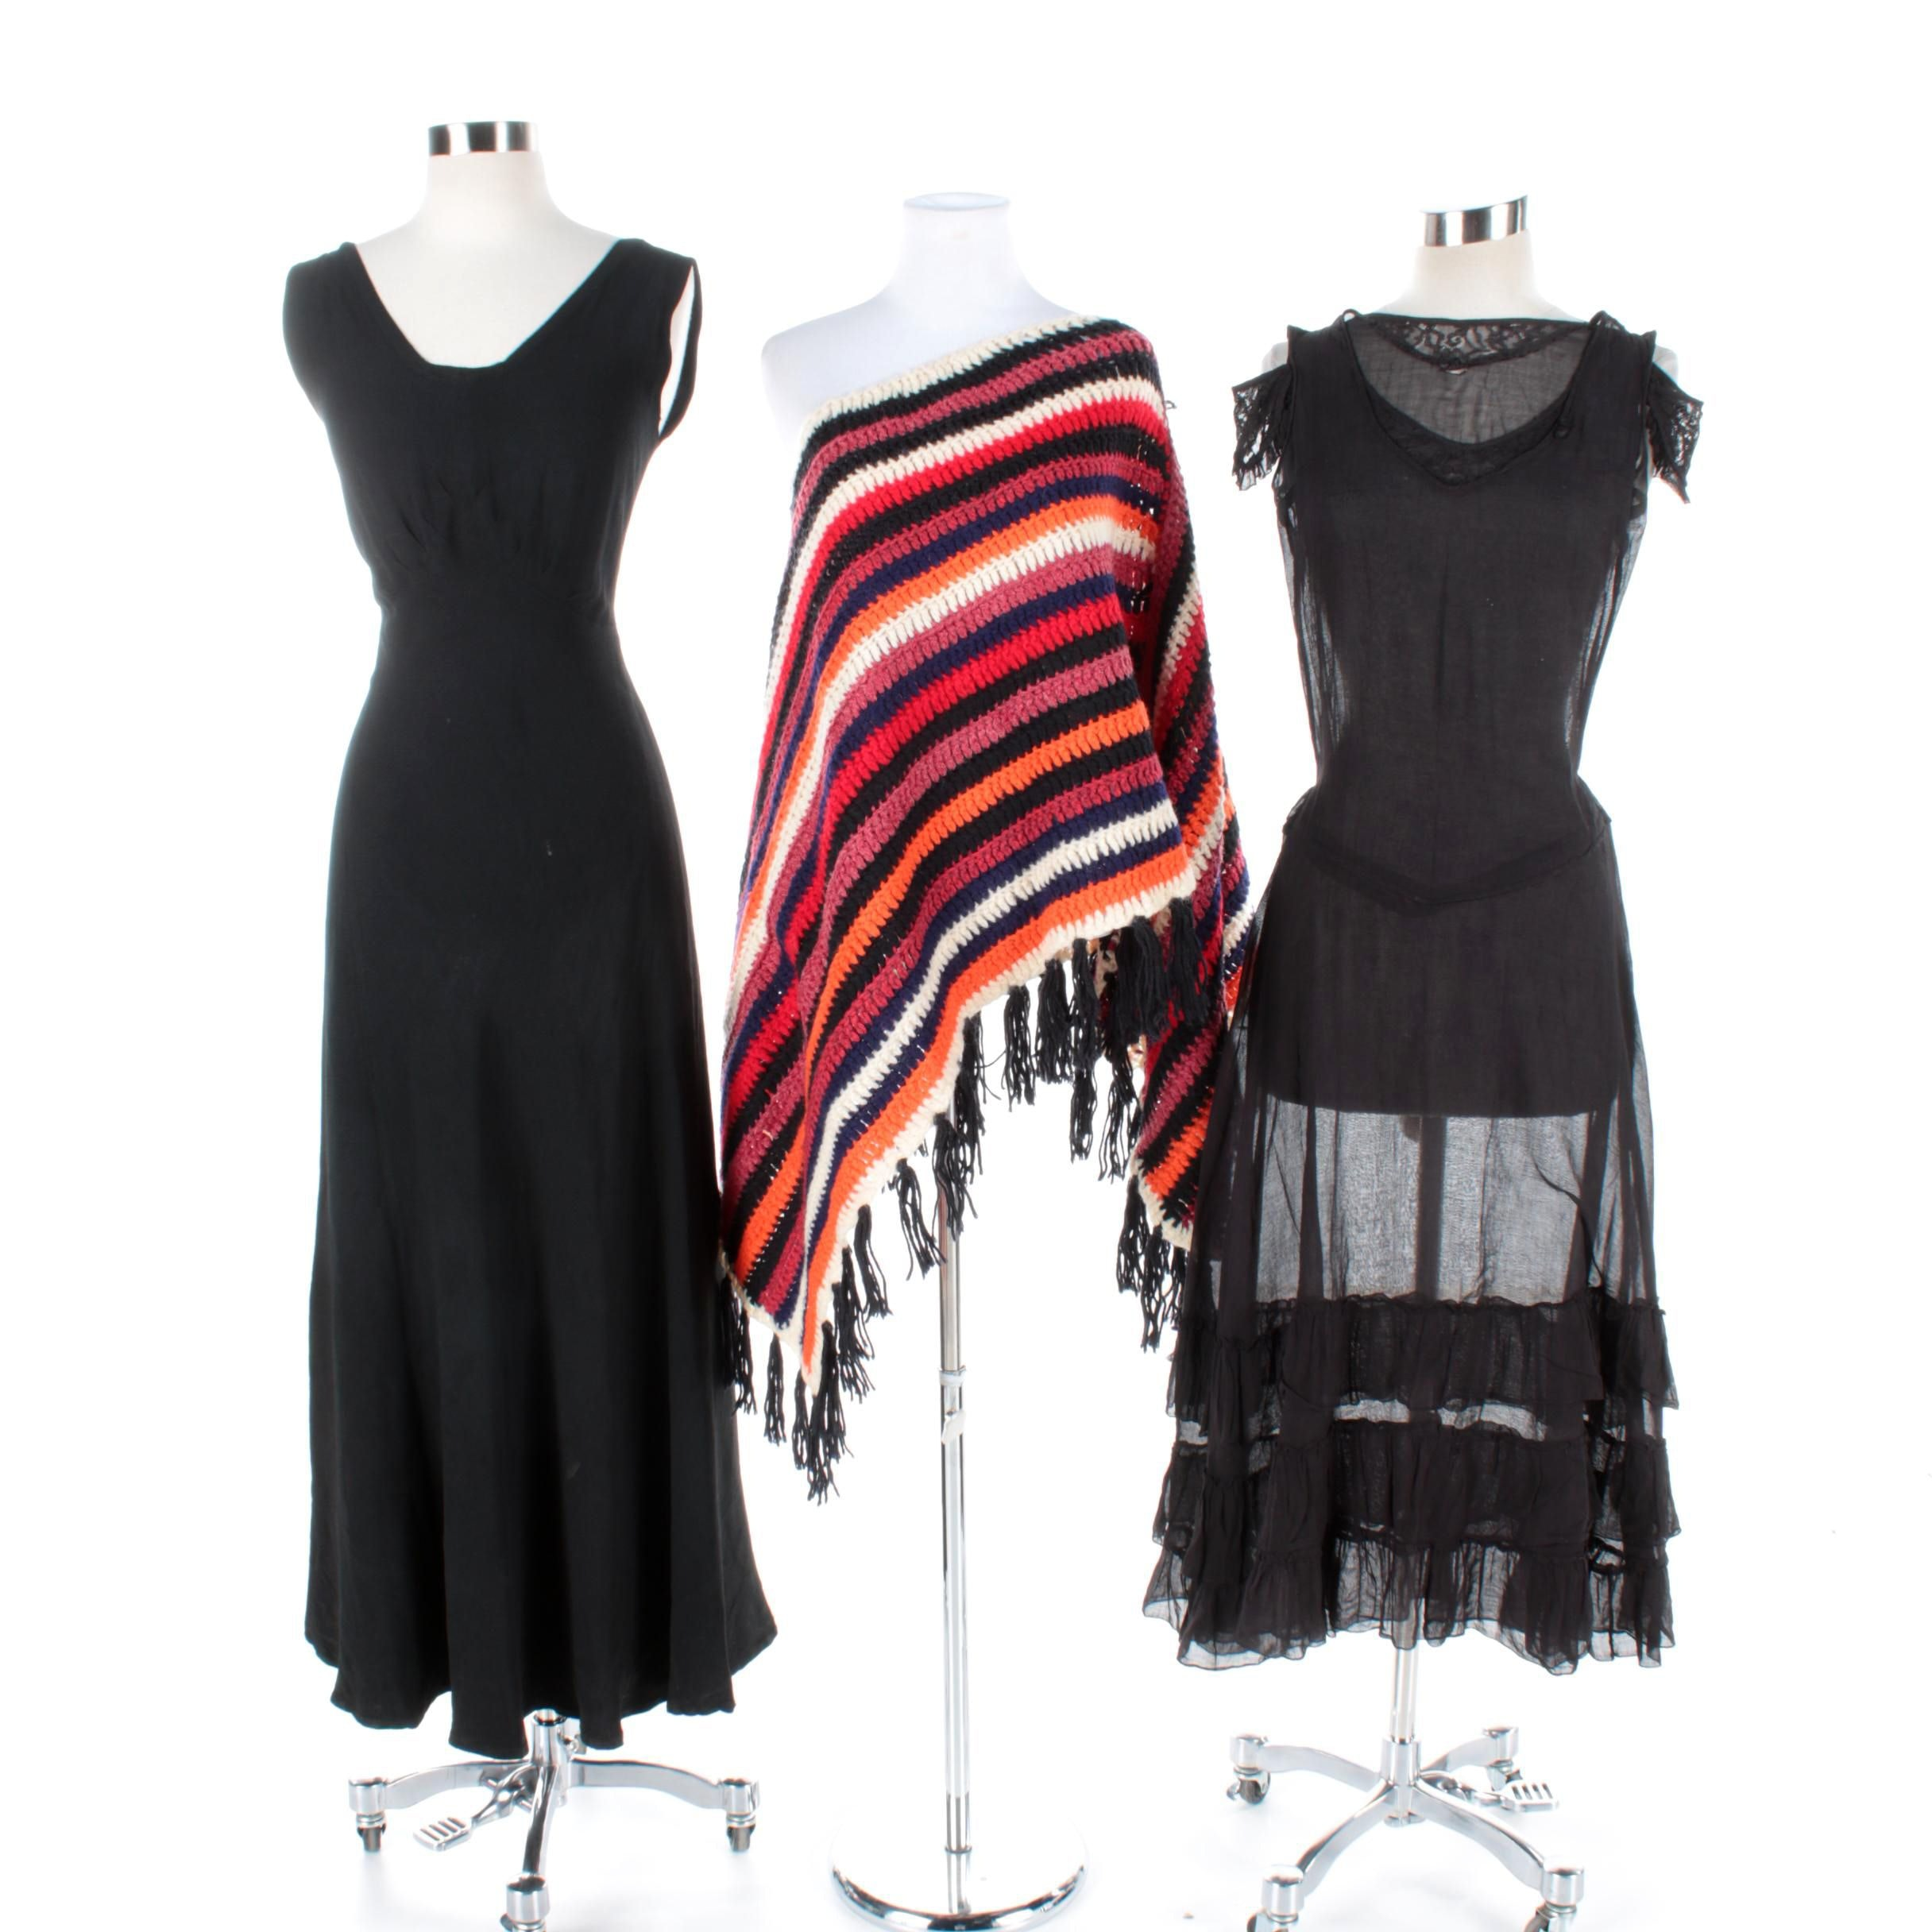 Vintage Black Dresses and Knit Poncho